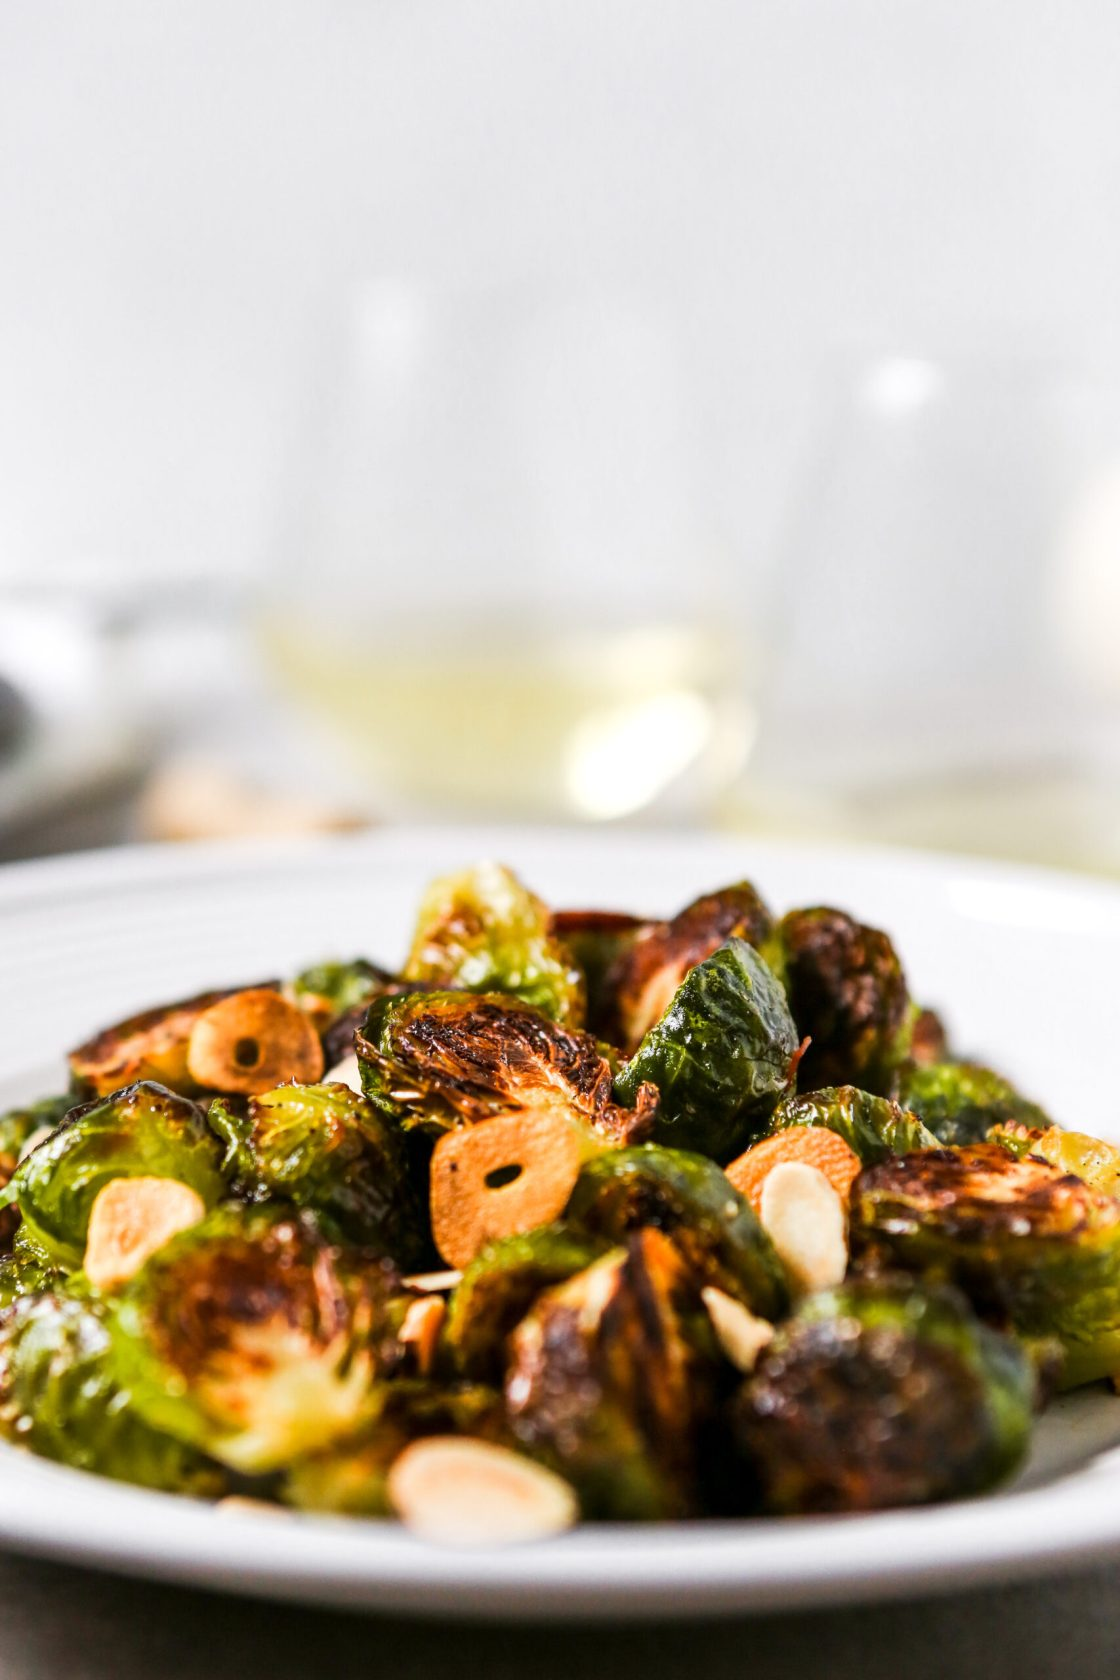 deeply roasted Brussels sprouts on a white plate.